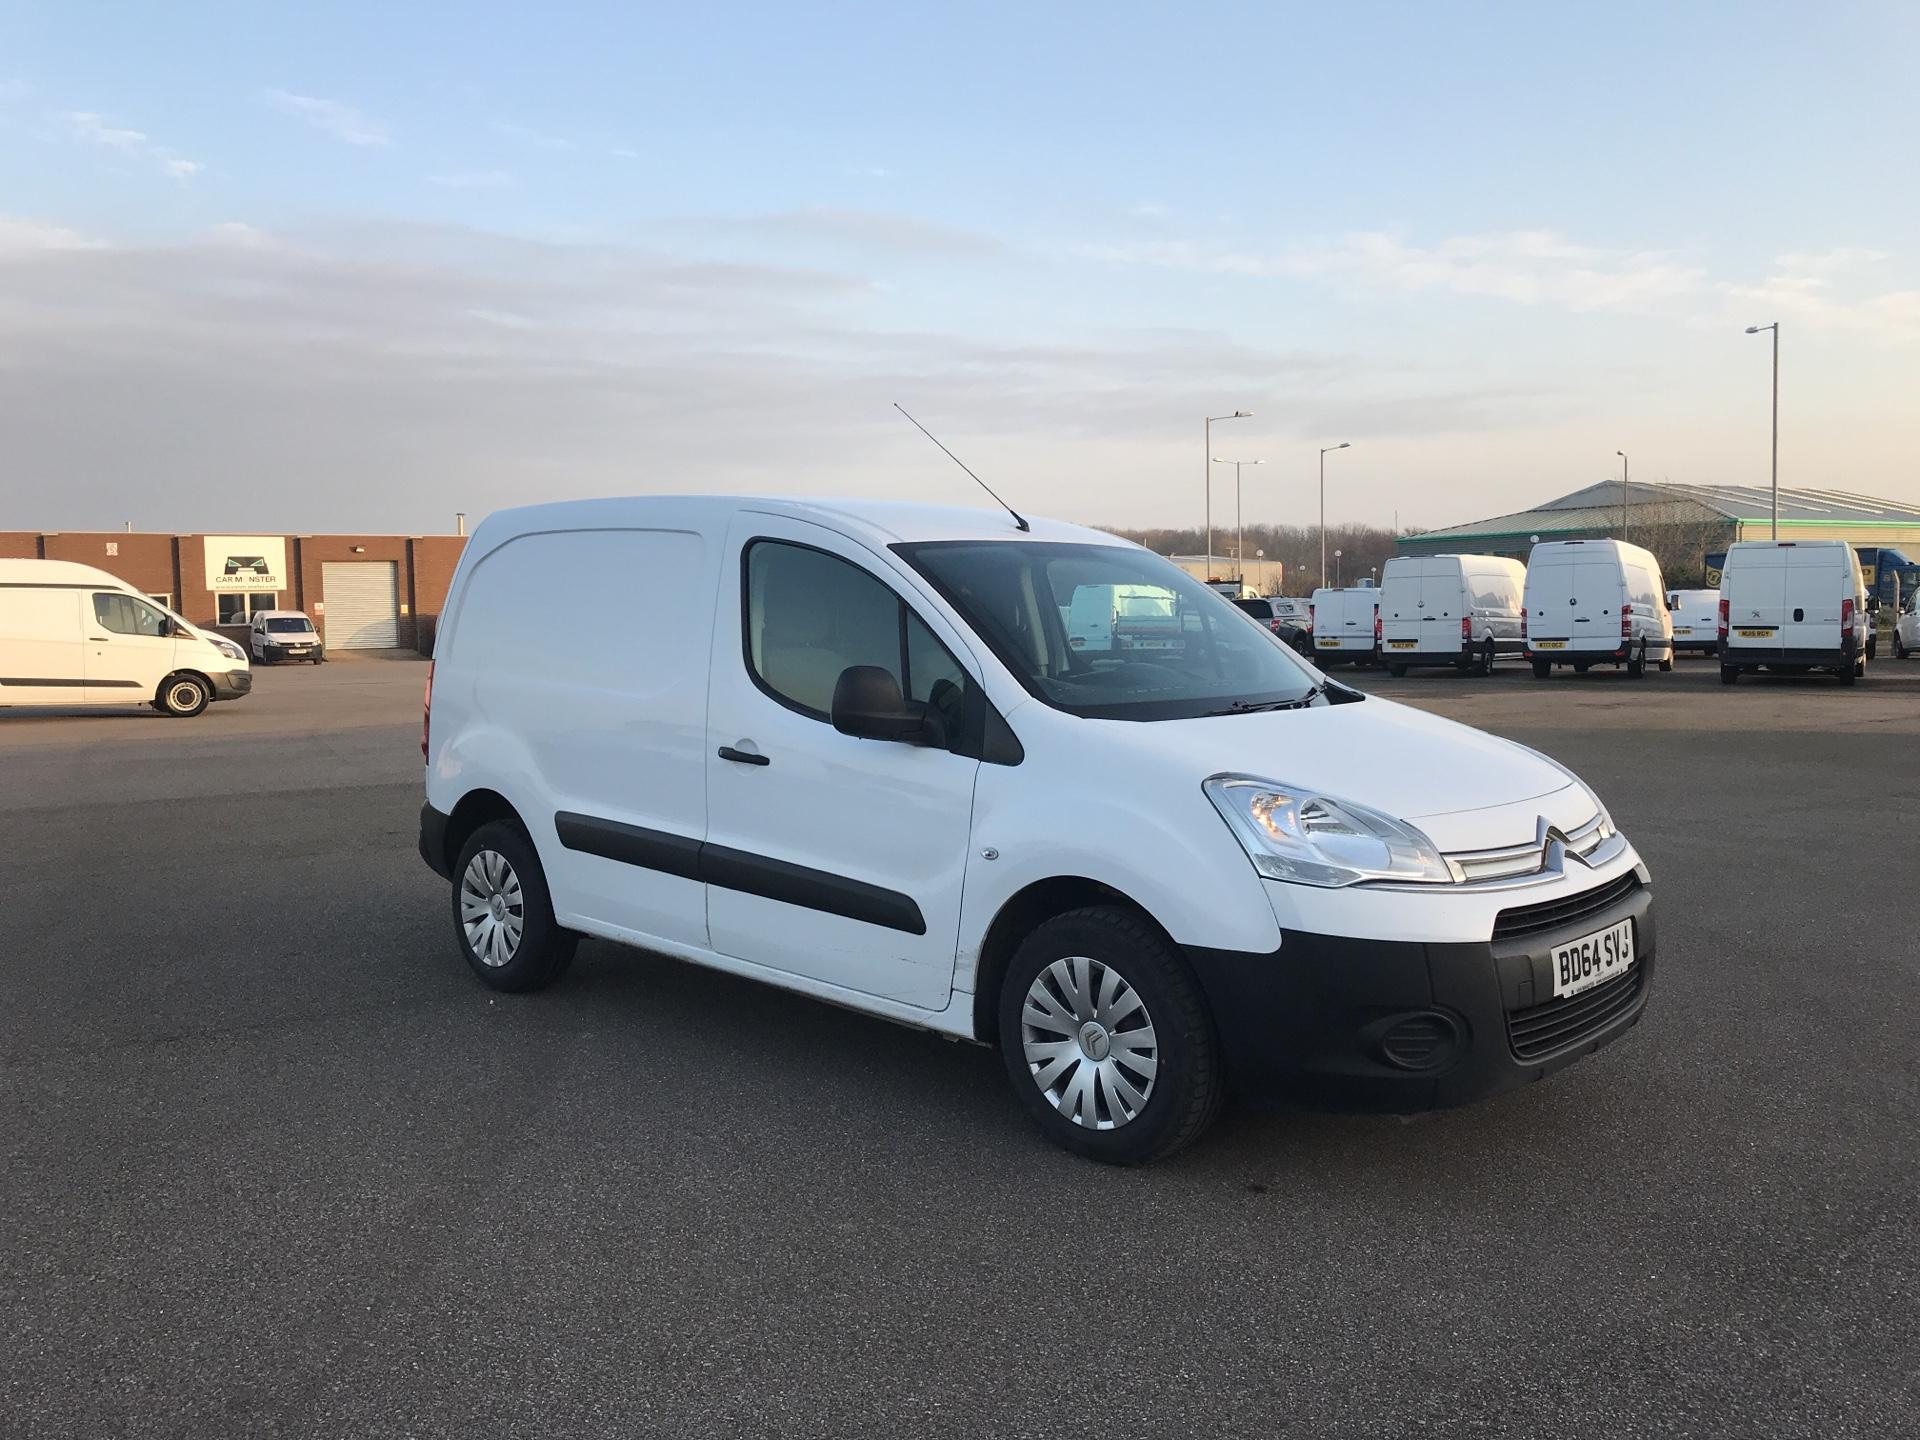 2014 Citroen Berlingo L1 DIESEL 1.6 HDI 625KG X 90PS (SLD) EURO 5. VALUE RANGE VEHICLE - CONDITION REFLECTED IN PRICE (BD64SVJ)